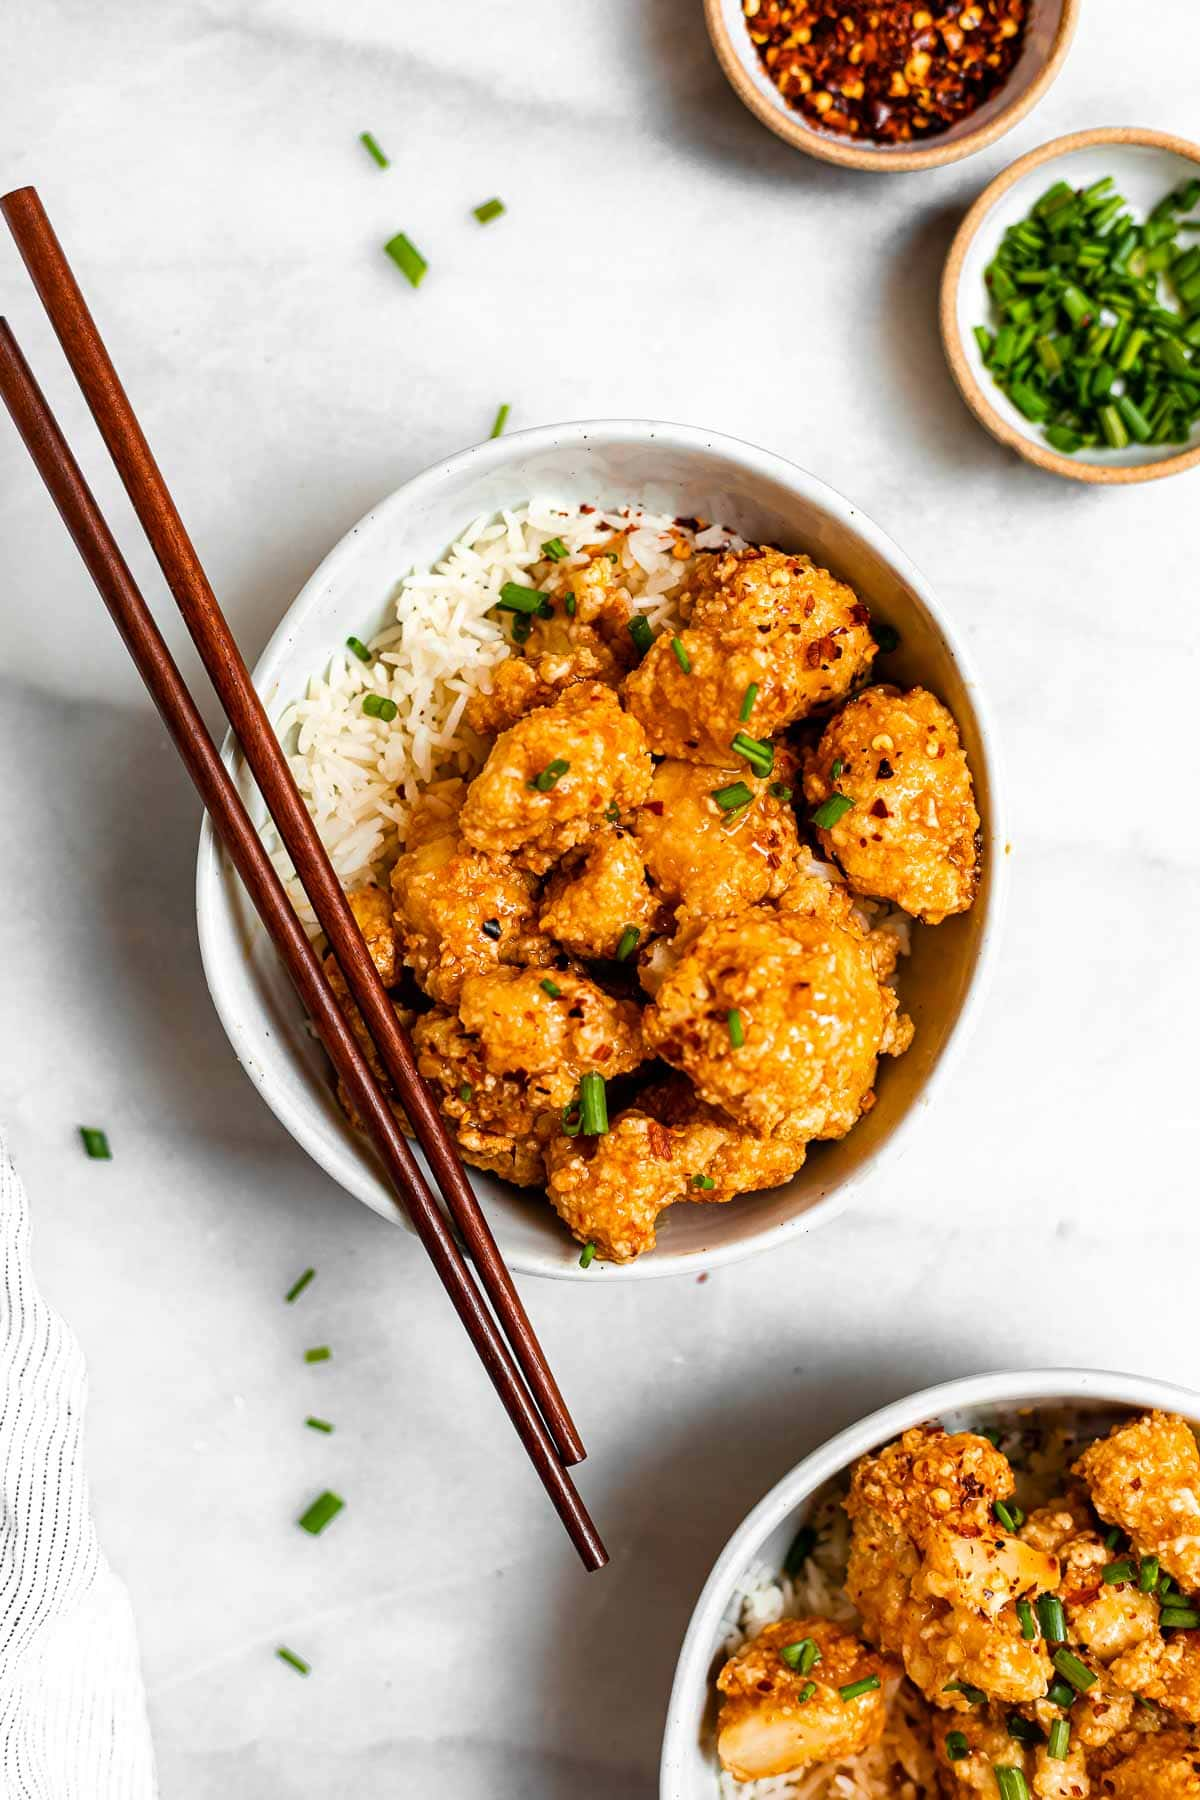 Final orange cauliflower in a bowl with rice and chopsticks.